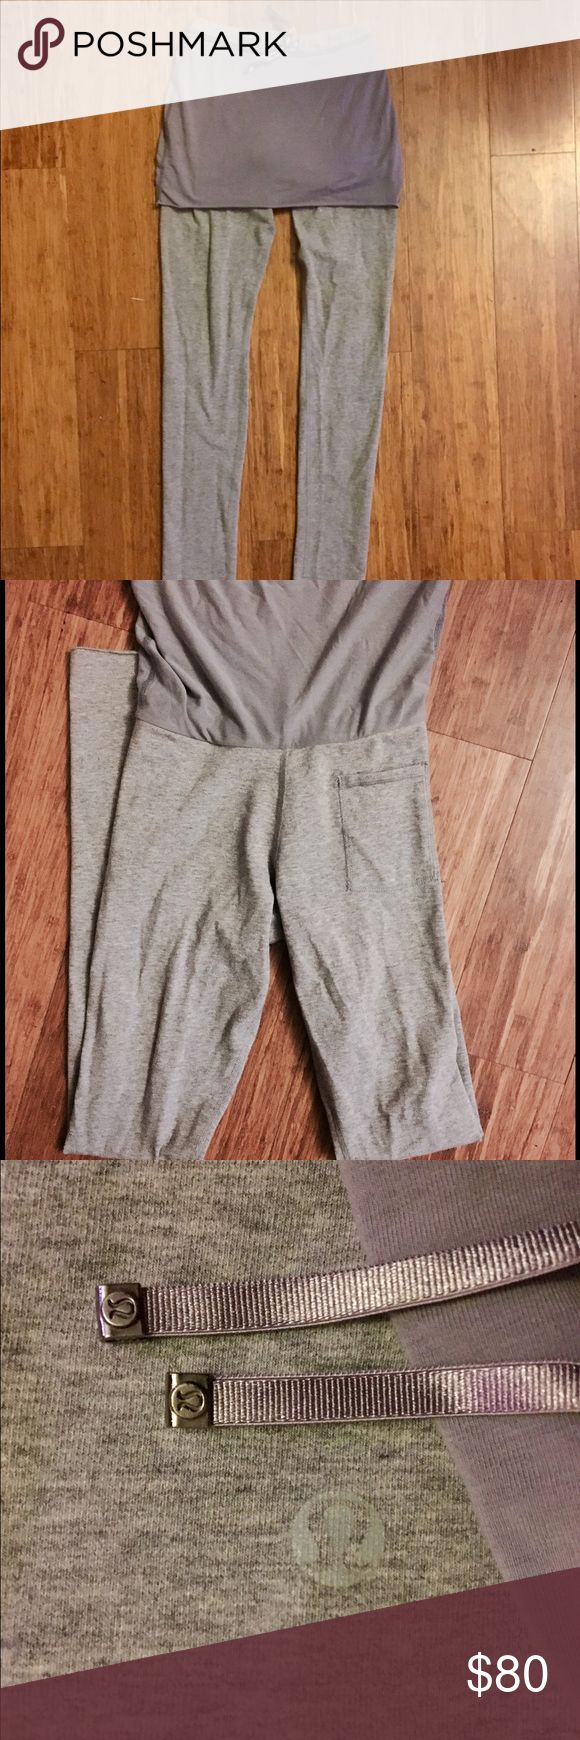 """Lululemon 4 pants Extra long pants with attached skirt. One small pocket. Lightly worn and in great condition. No piling or stains. Always hand wash and air dry. The inseam is 32"""". I usually fold them up but I know Lululemon stores will hem the pants shorter. Pants are light gray and the skirt is a grayish blue color. lululemon athletica Pants Leggings"""